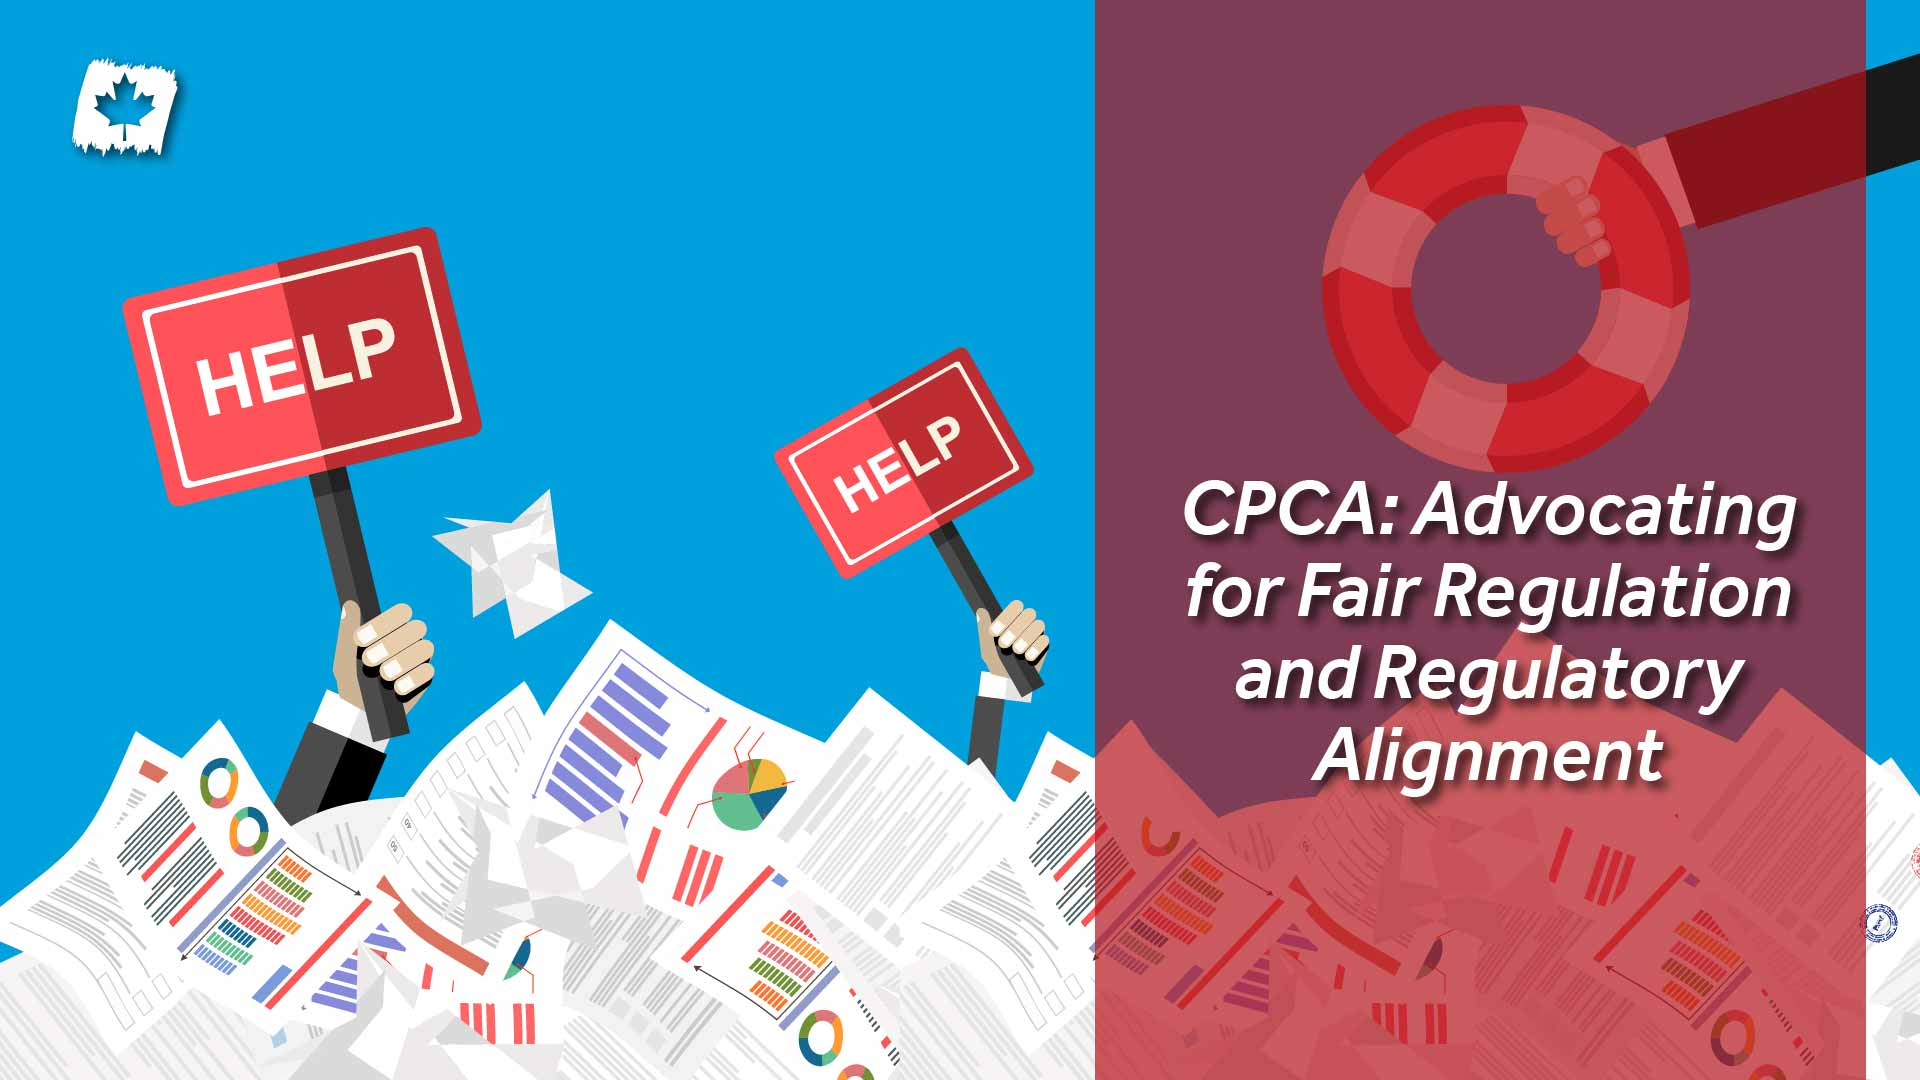 CPCA: Advocating for Fair Regulation and Regulatory Alignment